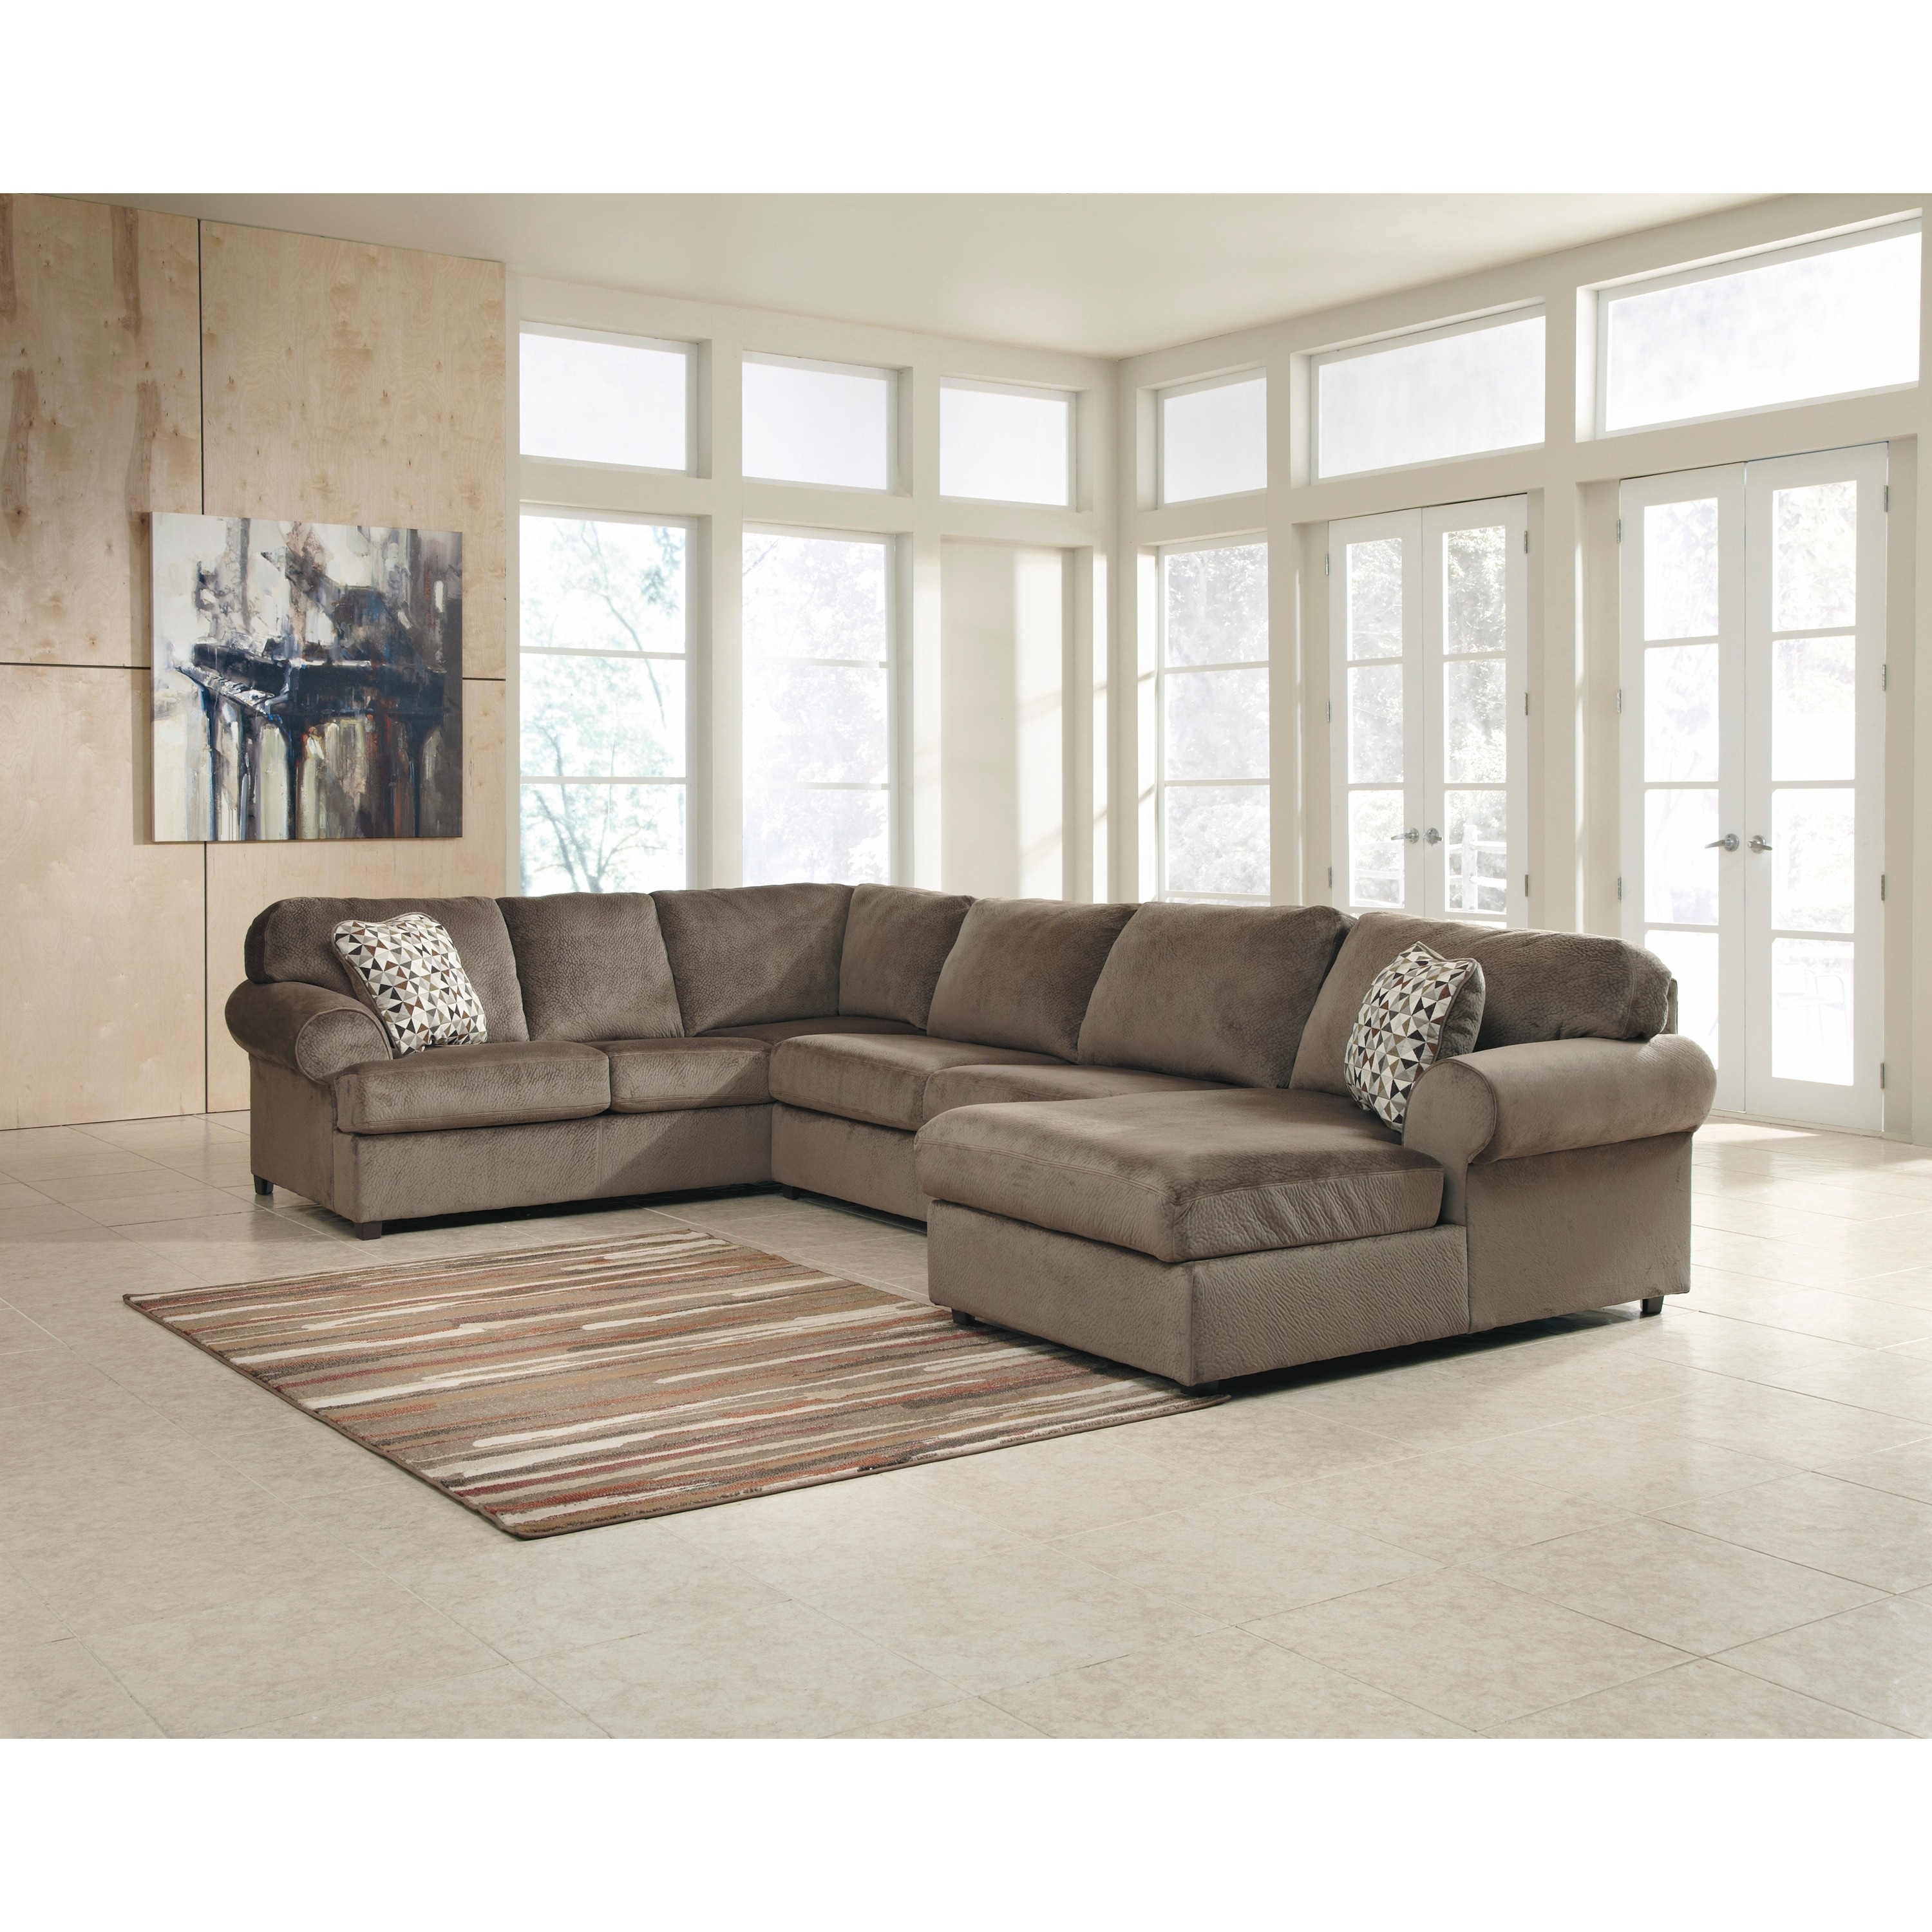 Signature Design By Ashley Jessa Place 3 Piece Left Side Facing Sofa Sectional Overstock 10356142